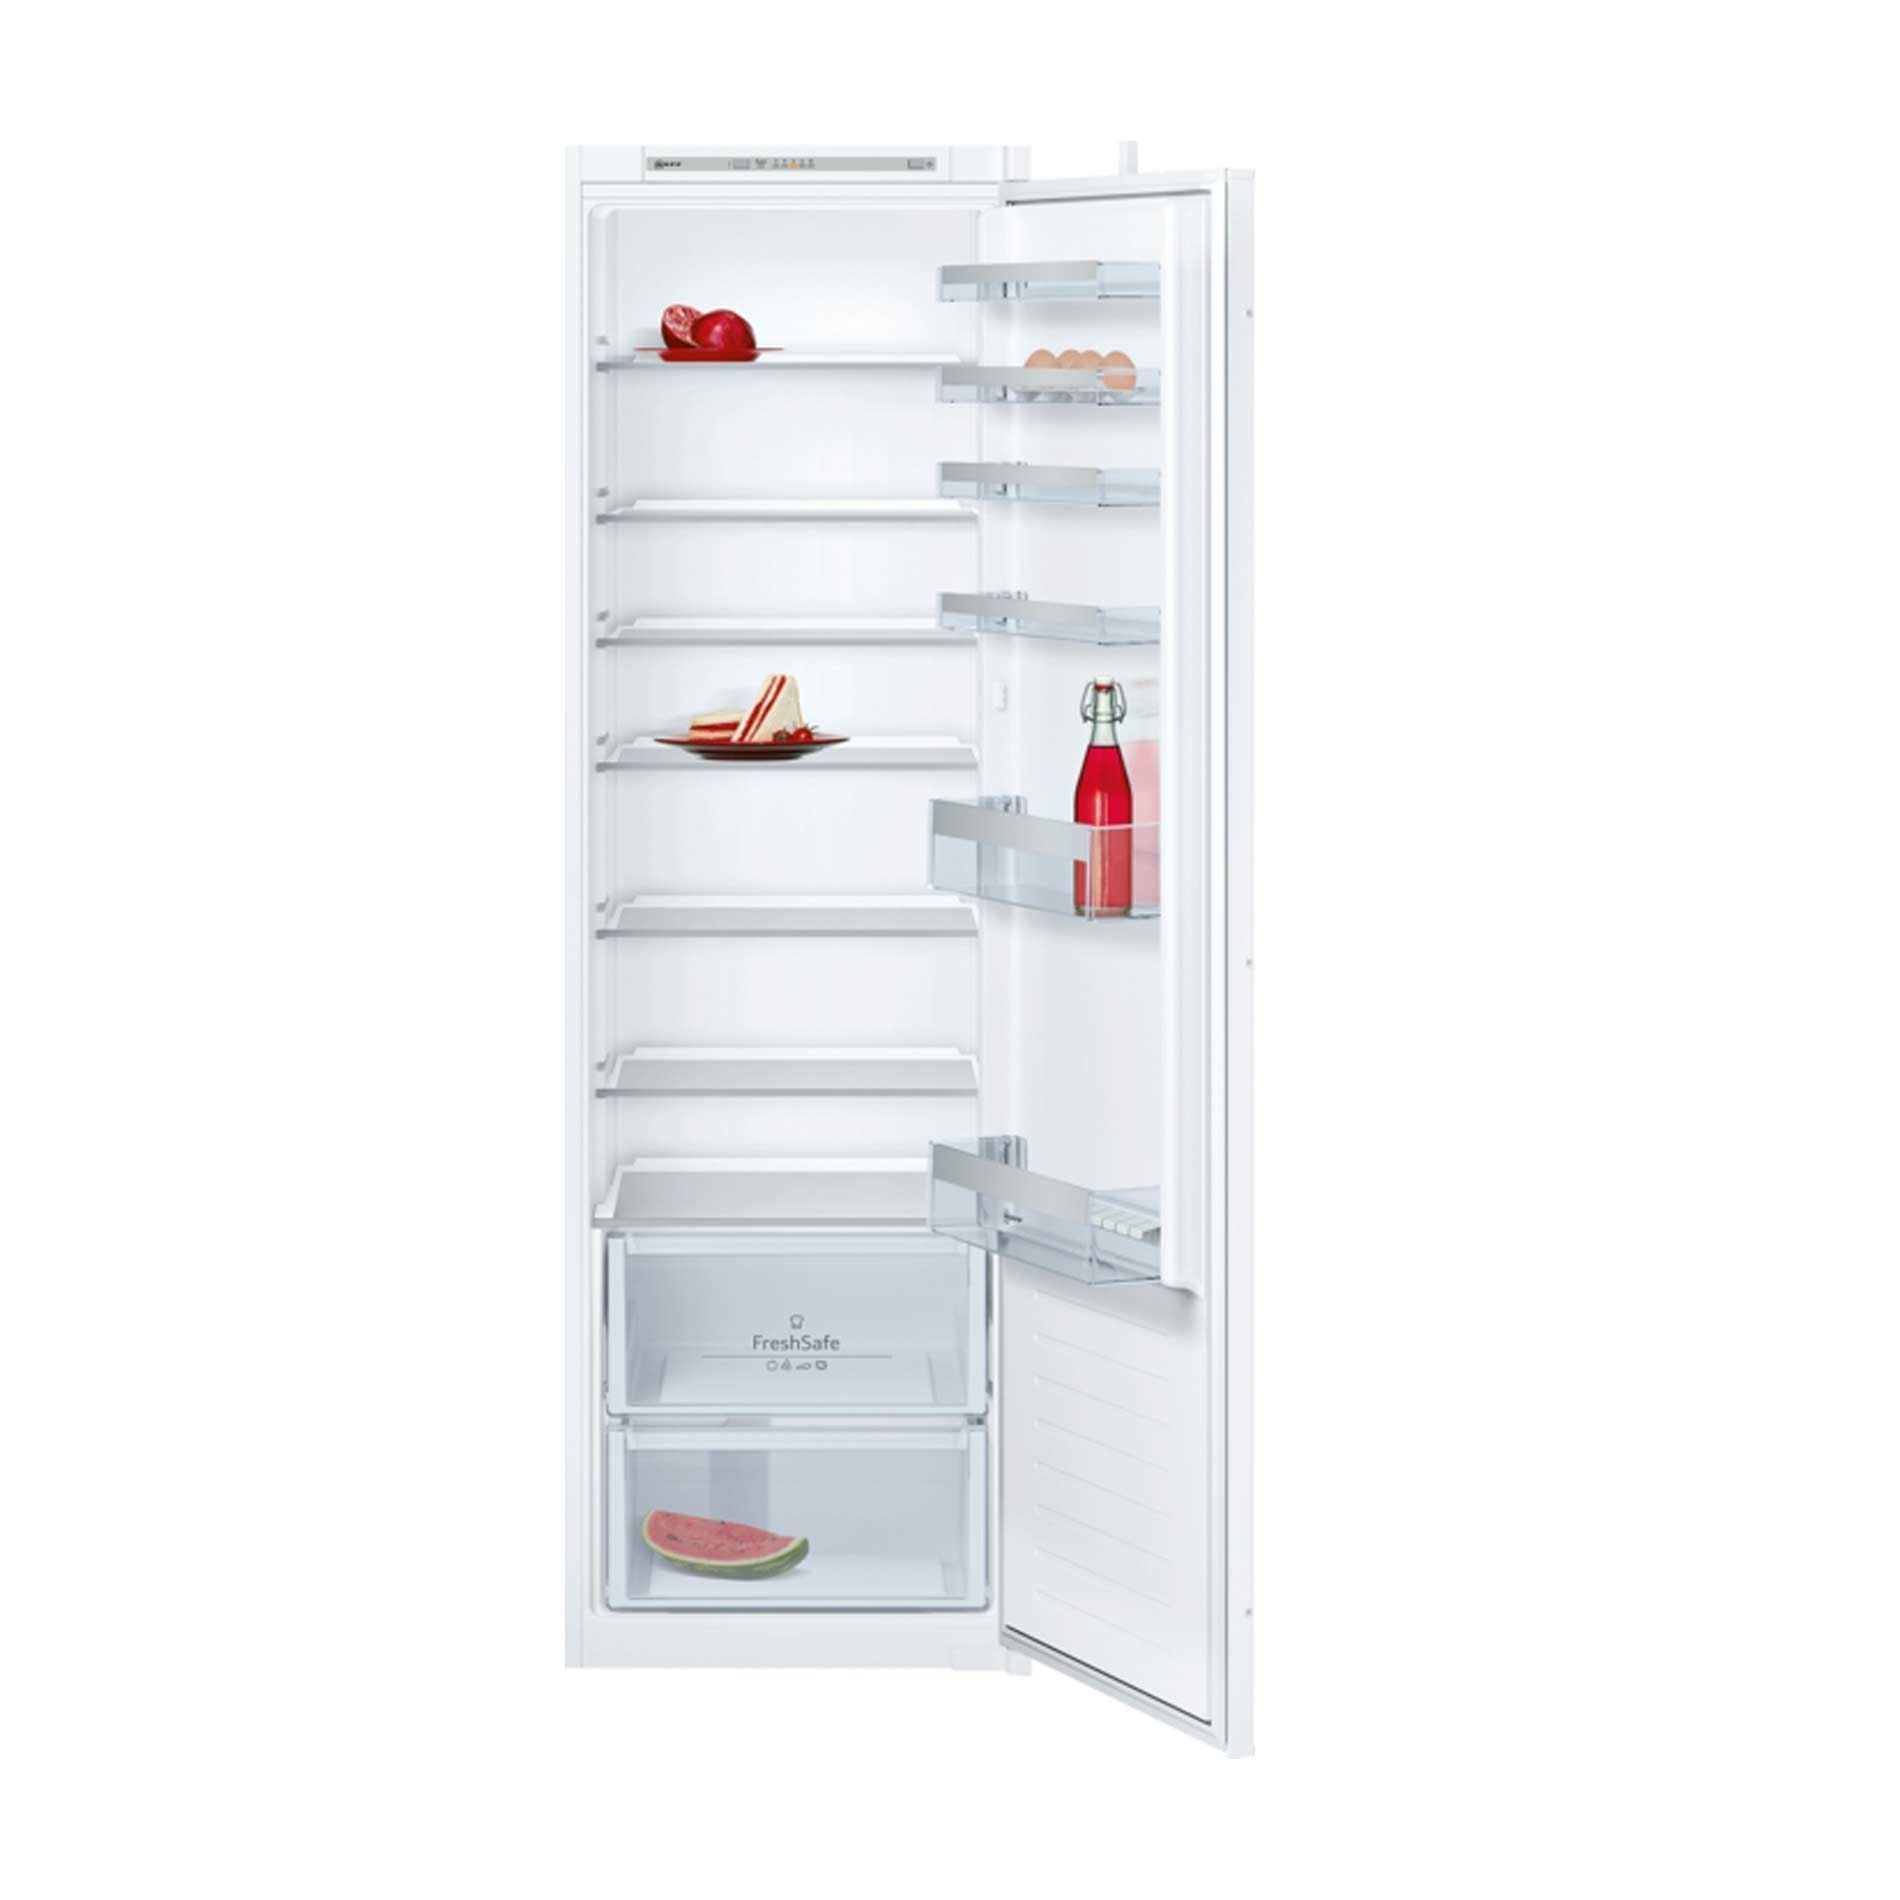 Picture of KI1812S30G Built In Fridge